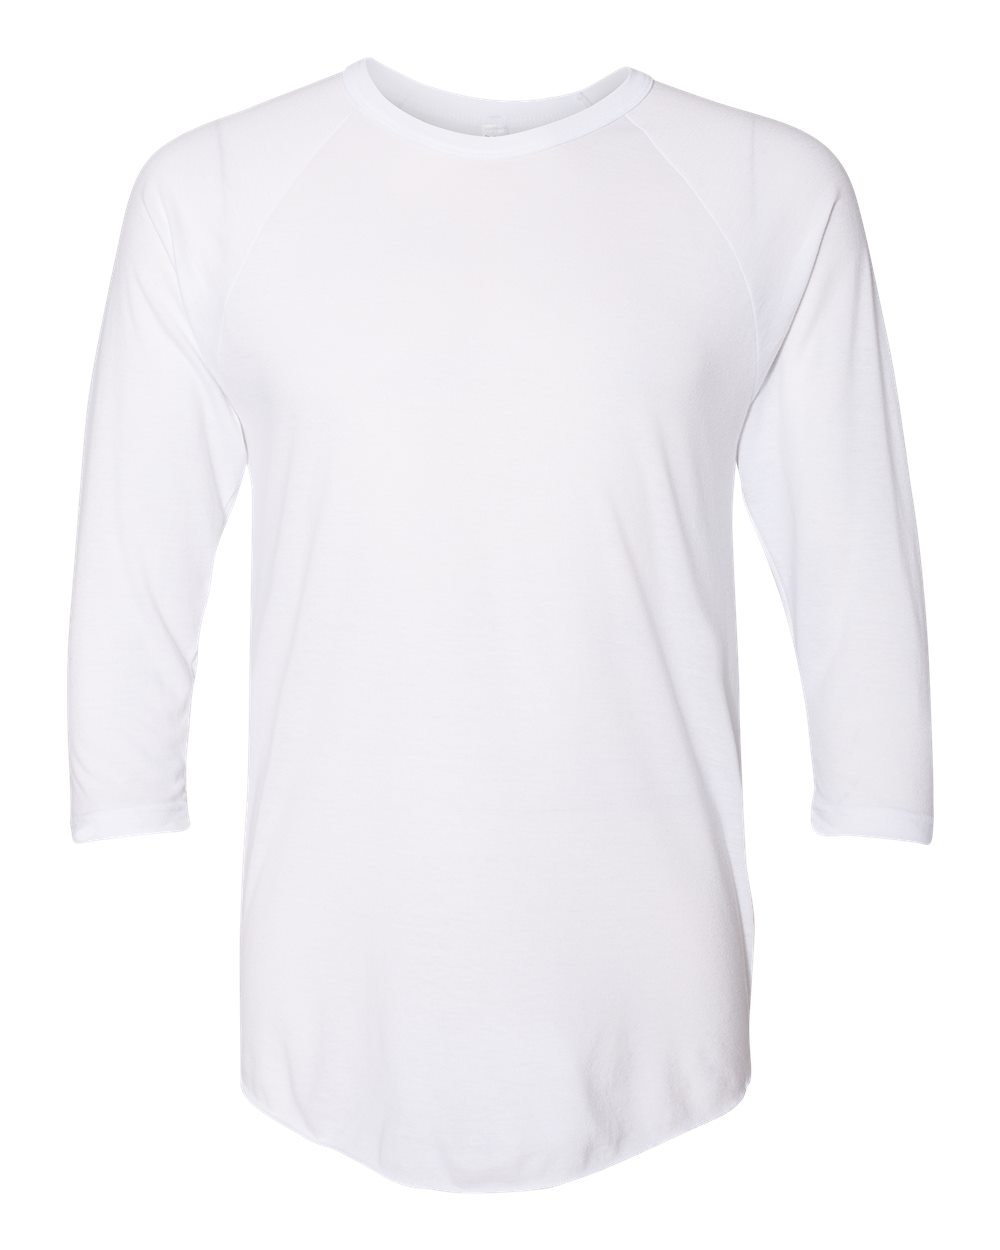 50/50 Raglan Three-Quarter Sleeve Tee-American Apparel